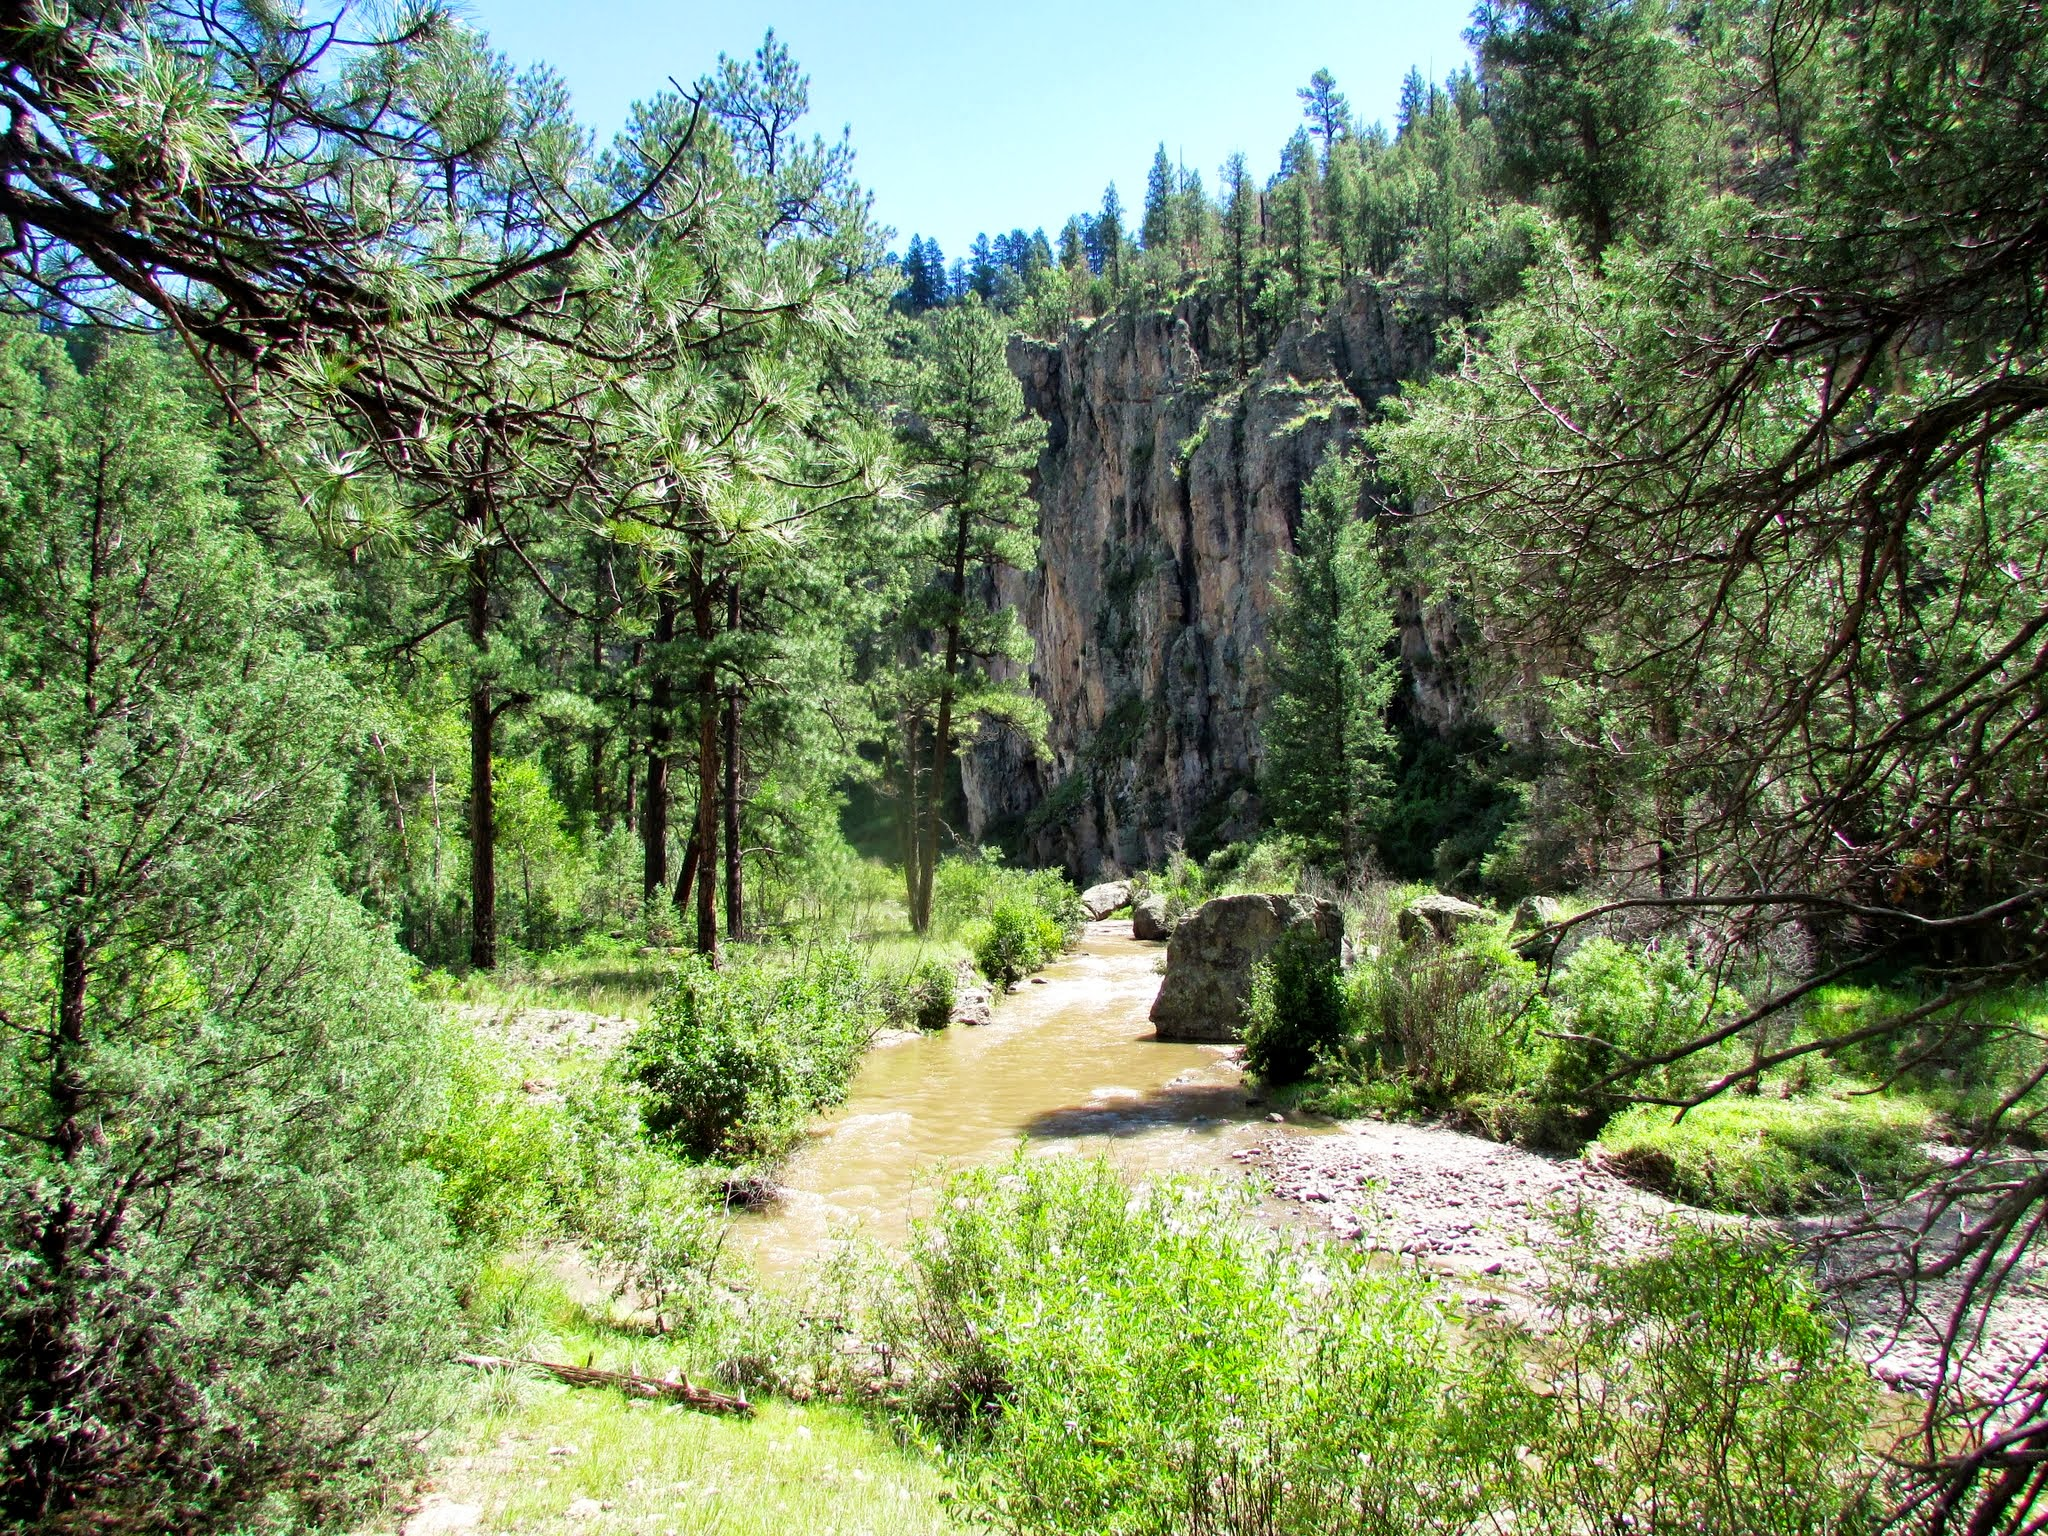 Legislation to Protect the Gila and San Francisco Rivers Takes Important Step Forward